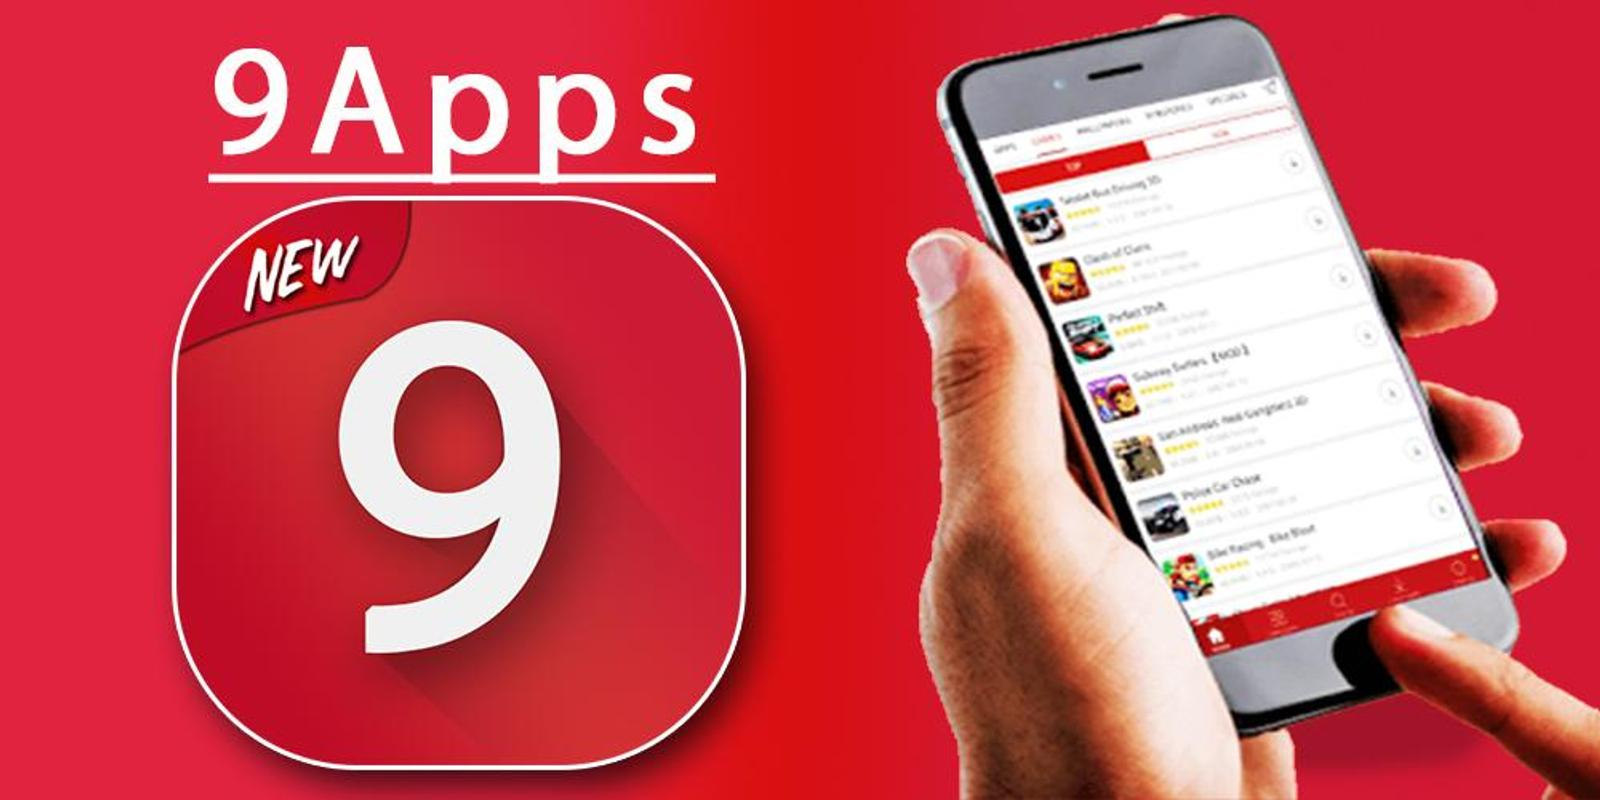 Guide On How To Download 9apps On Android Device